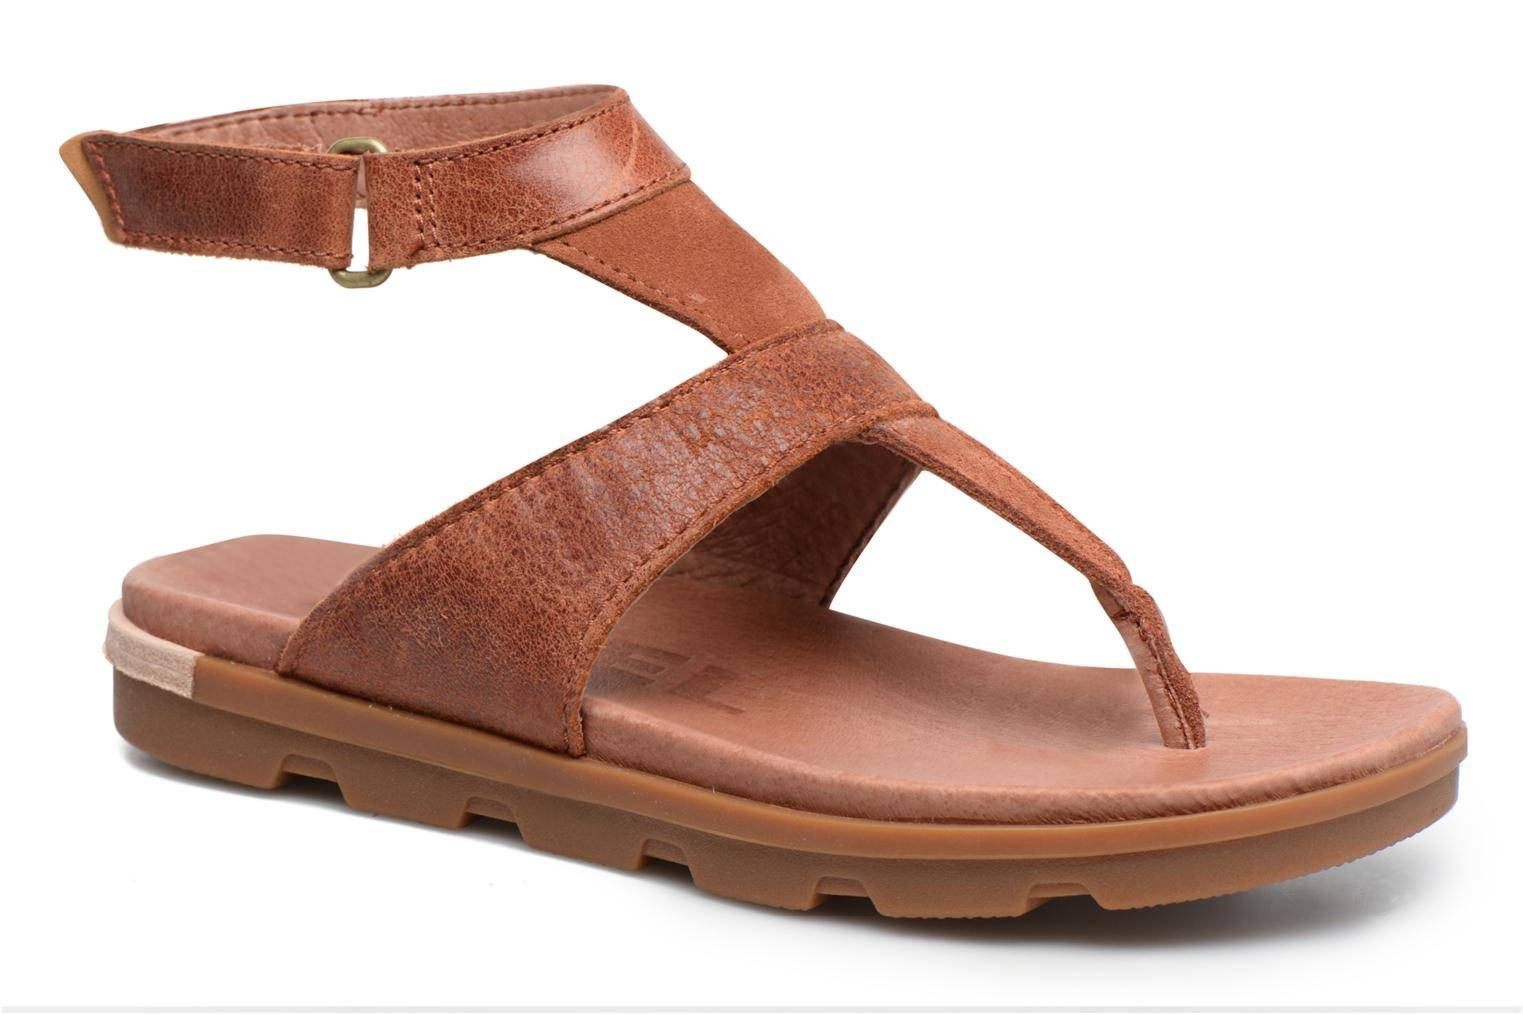 Sorel - Torpeda Ankle Strap by  - Sandaalit Naisille  / Ruskea